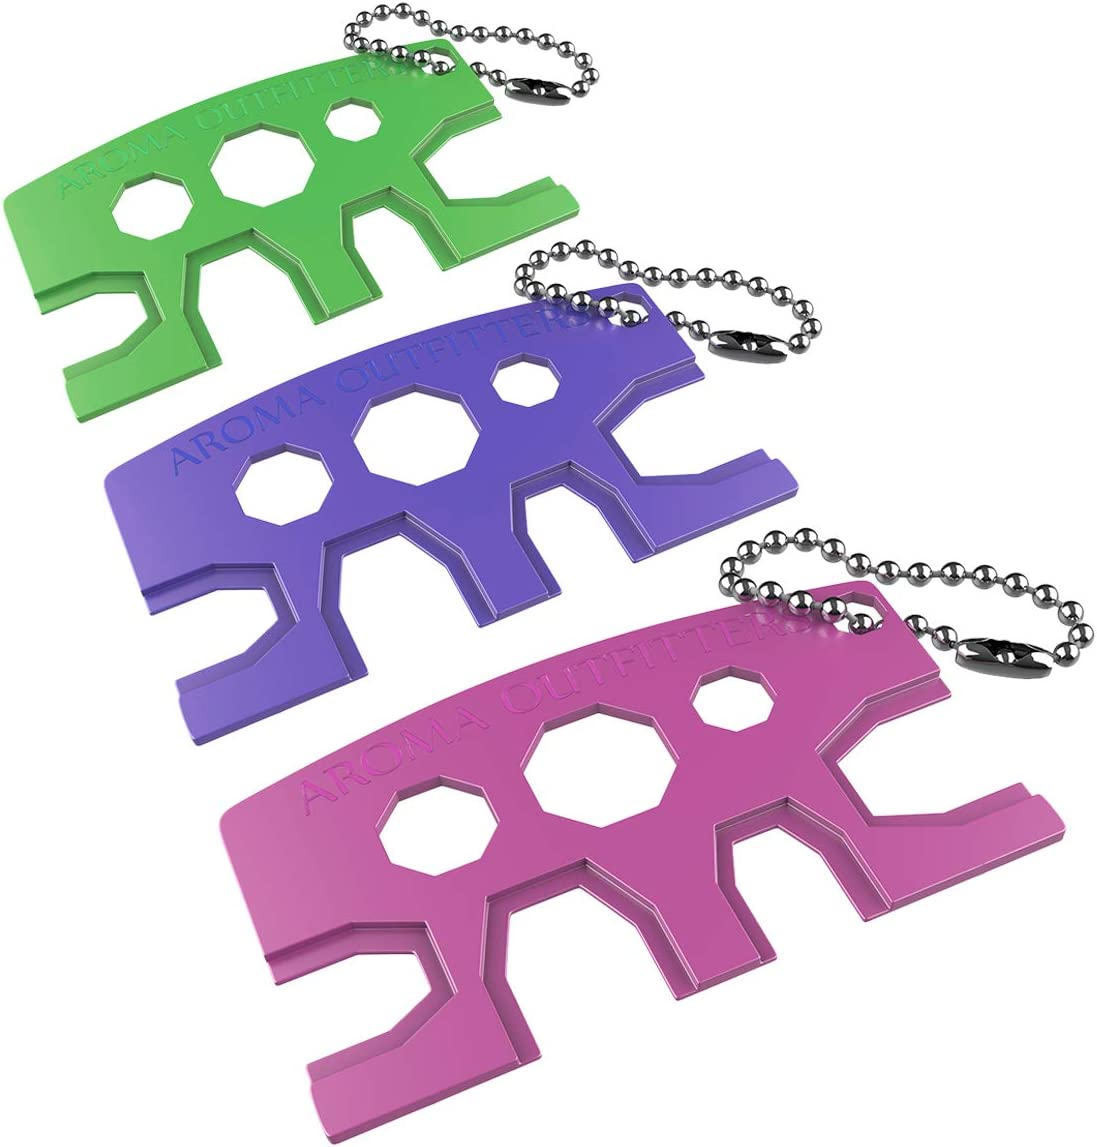 Essential Oil Attention brand Bottle Opener - 3 Easily Tool Pack Key Oils San Jose Mall Metal